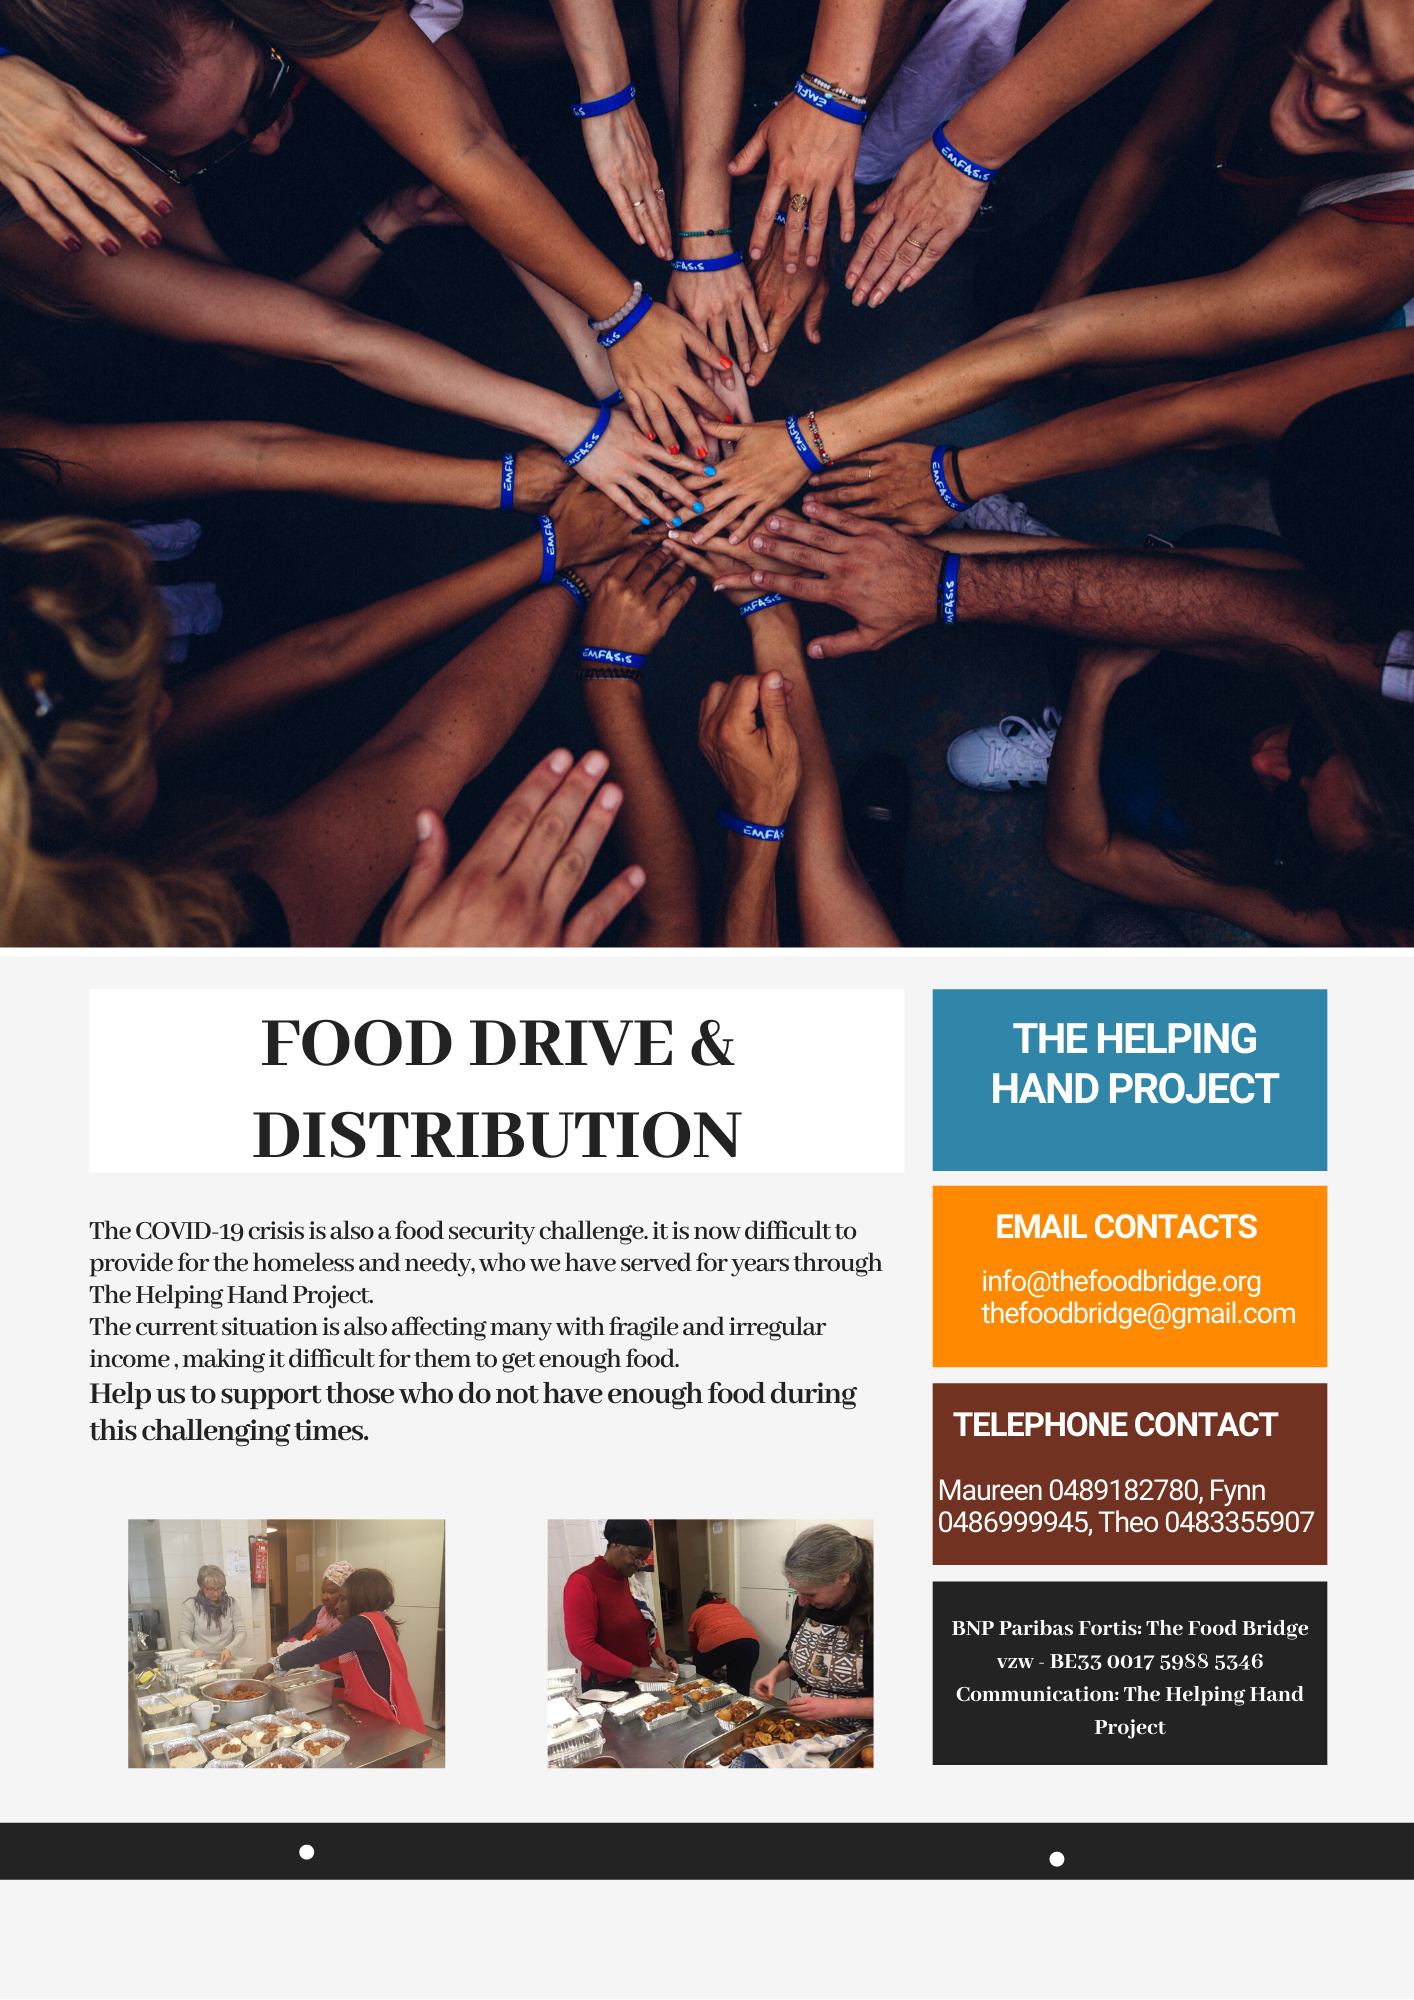 Food Drive helping hand